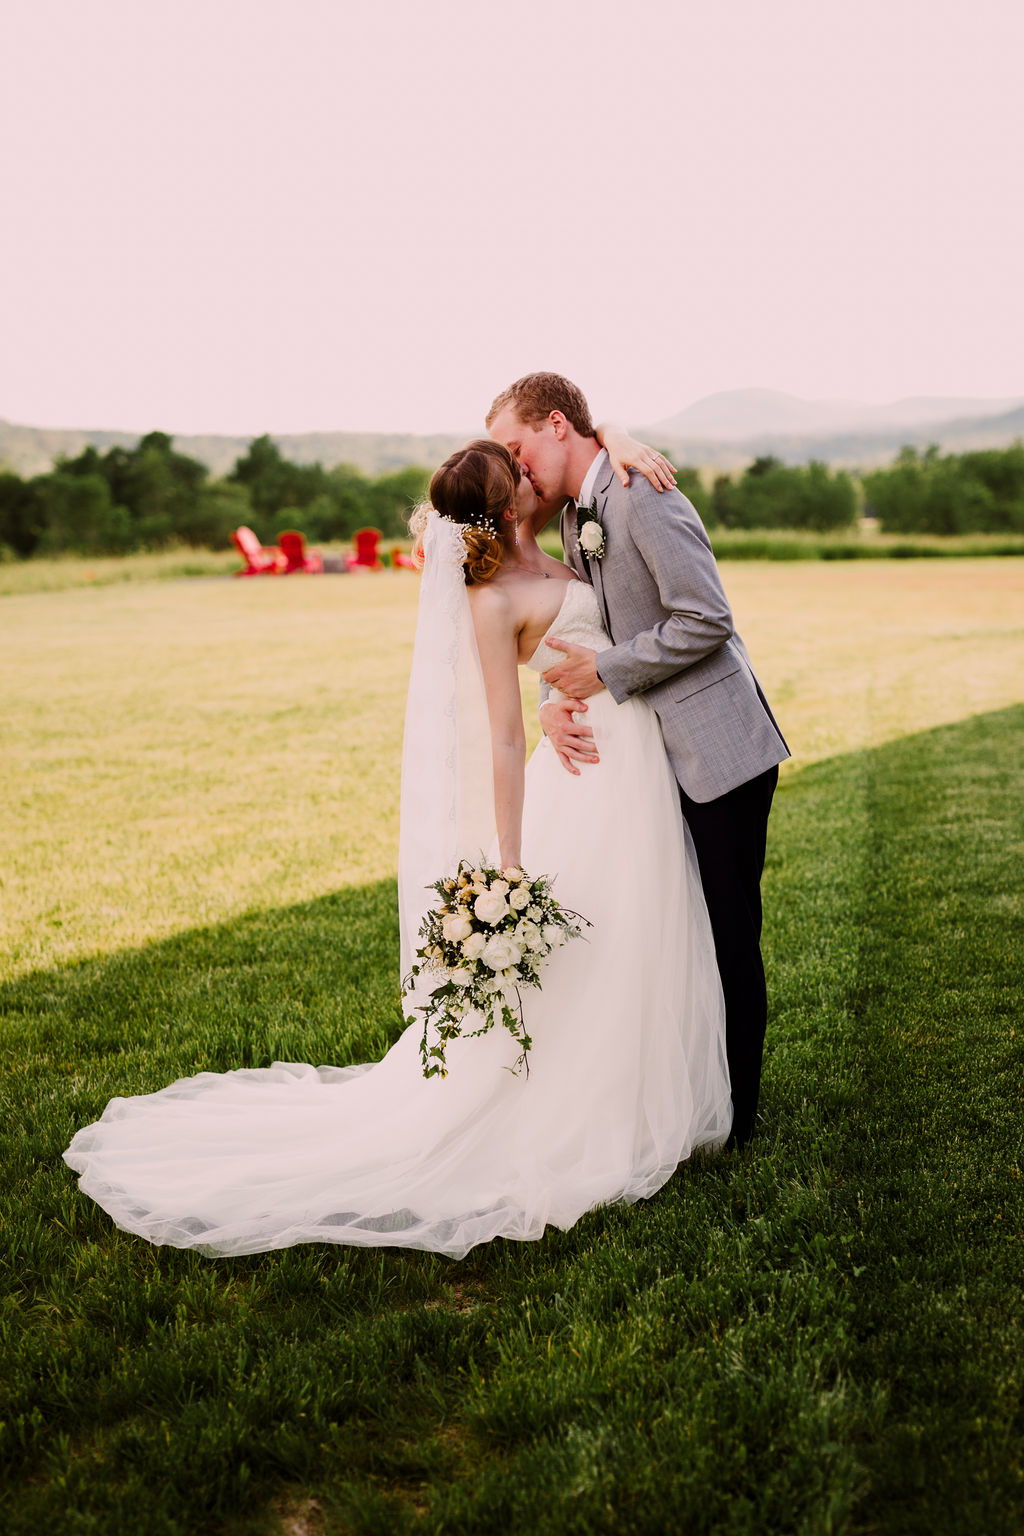 DIYSummerHudsonValleyWedding_HudsonValleyWeddingPhotographer.jpg